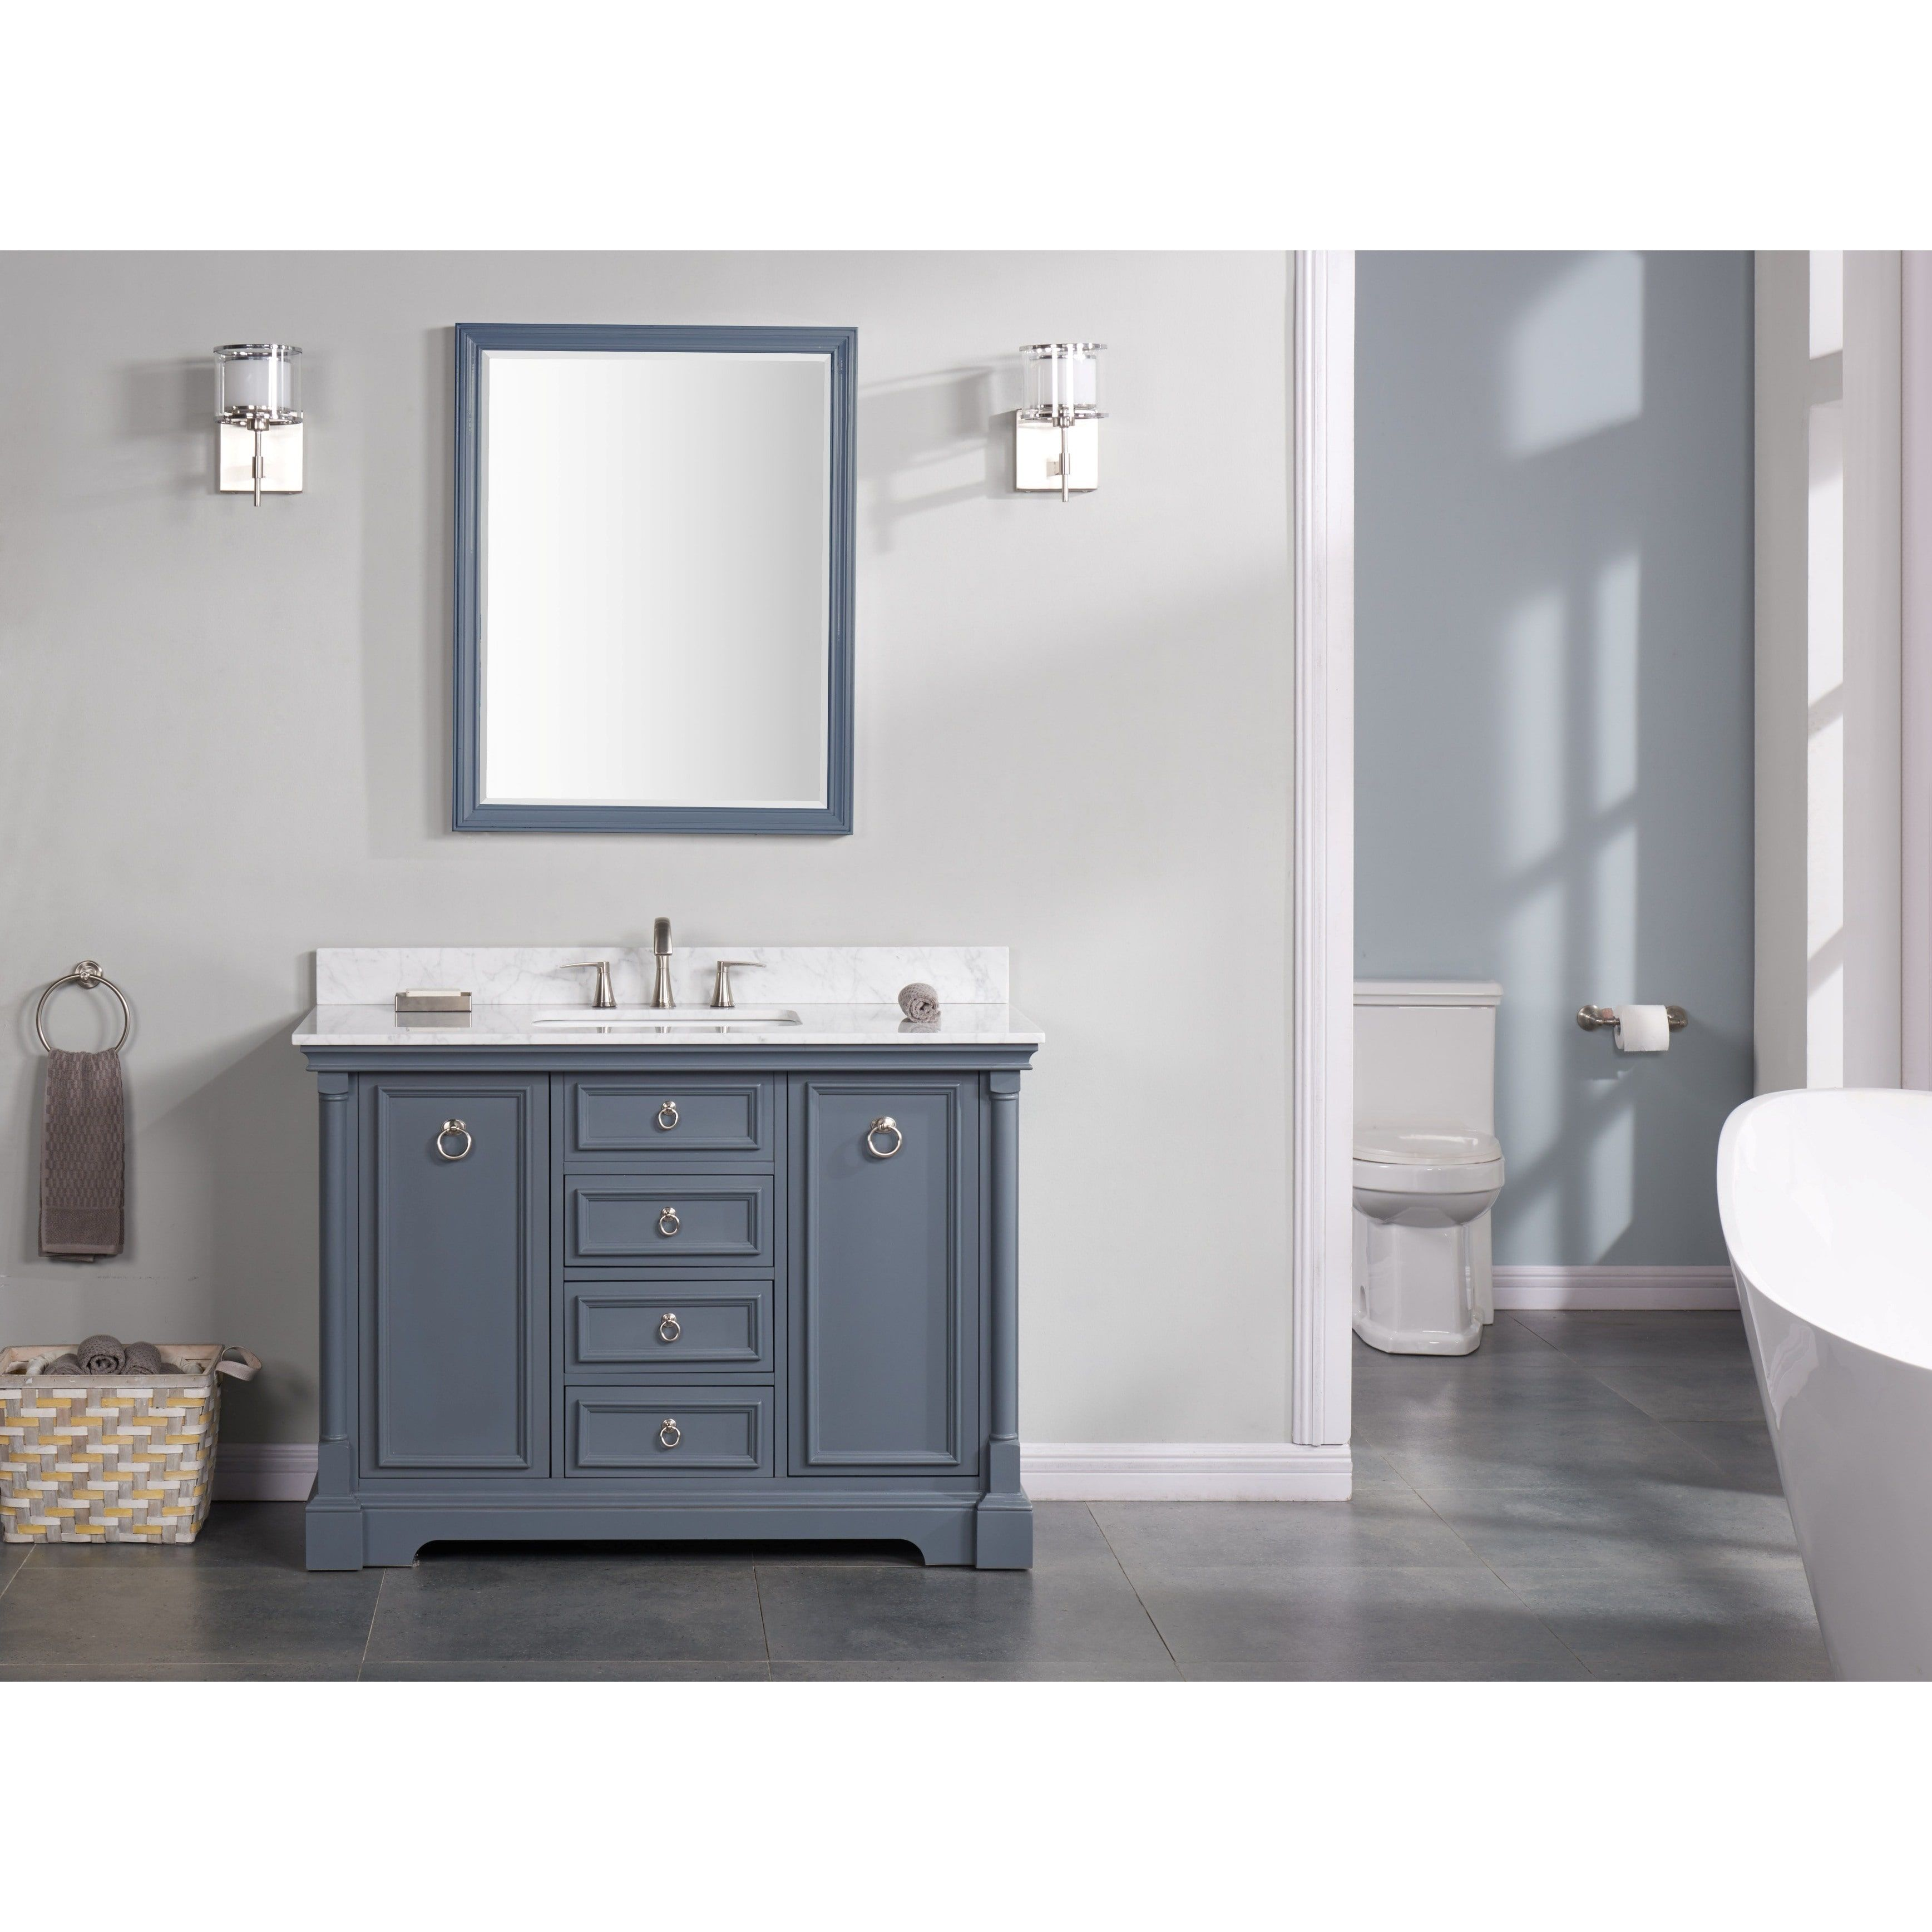 pdx bathroom home kbc bath nantucket improvement single vanity set kitchen collection reviews wayfair